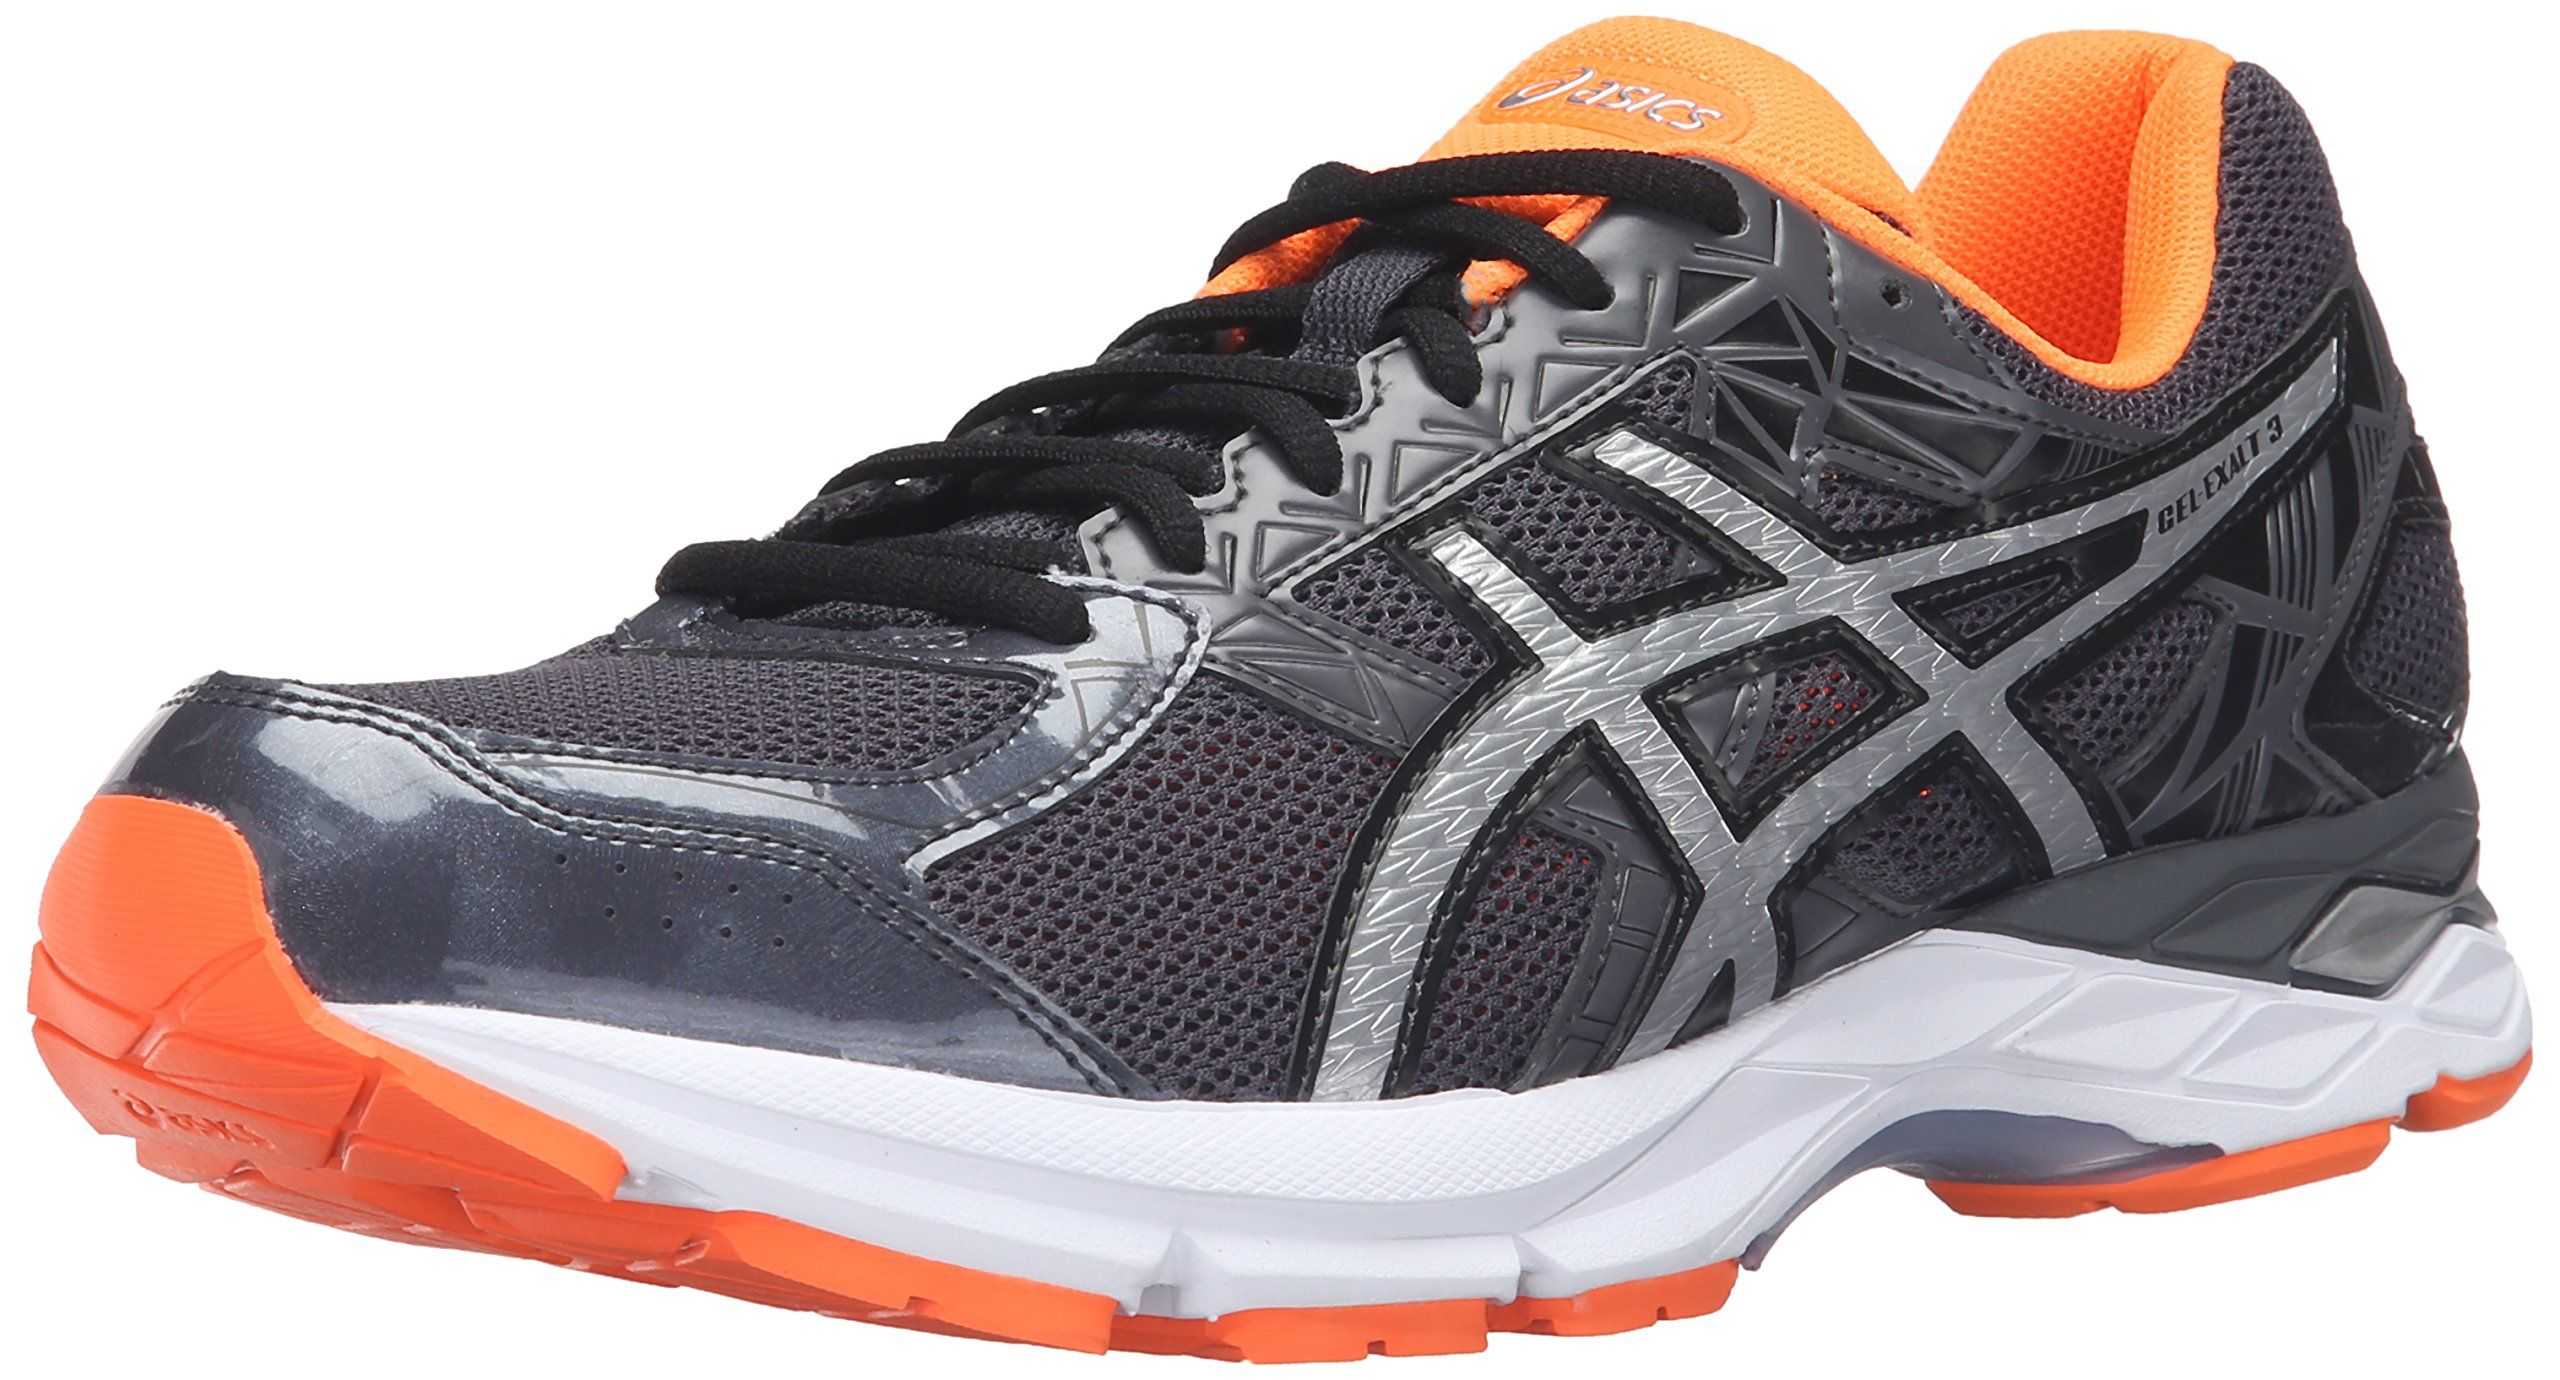 ASICS Men's Gel-Exalt 3 Running Shoe, Dark Grey/Silver/Hot Orange, 8 M US.  Lace-up running shoe featuring breathable mesh upper with supportive  synthetic ...